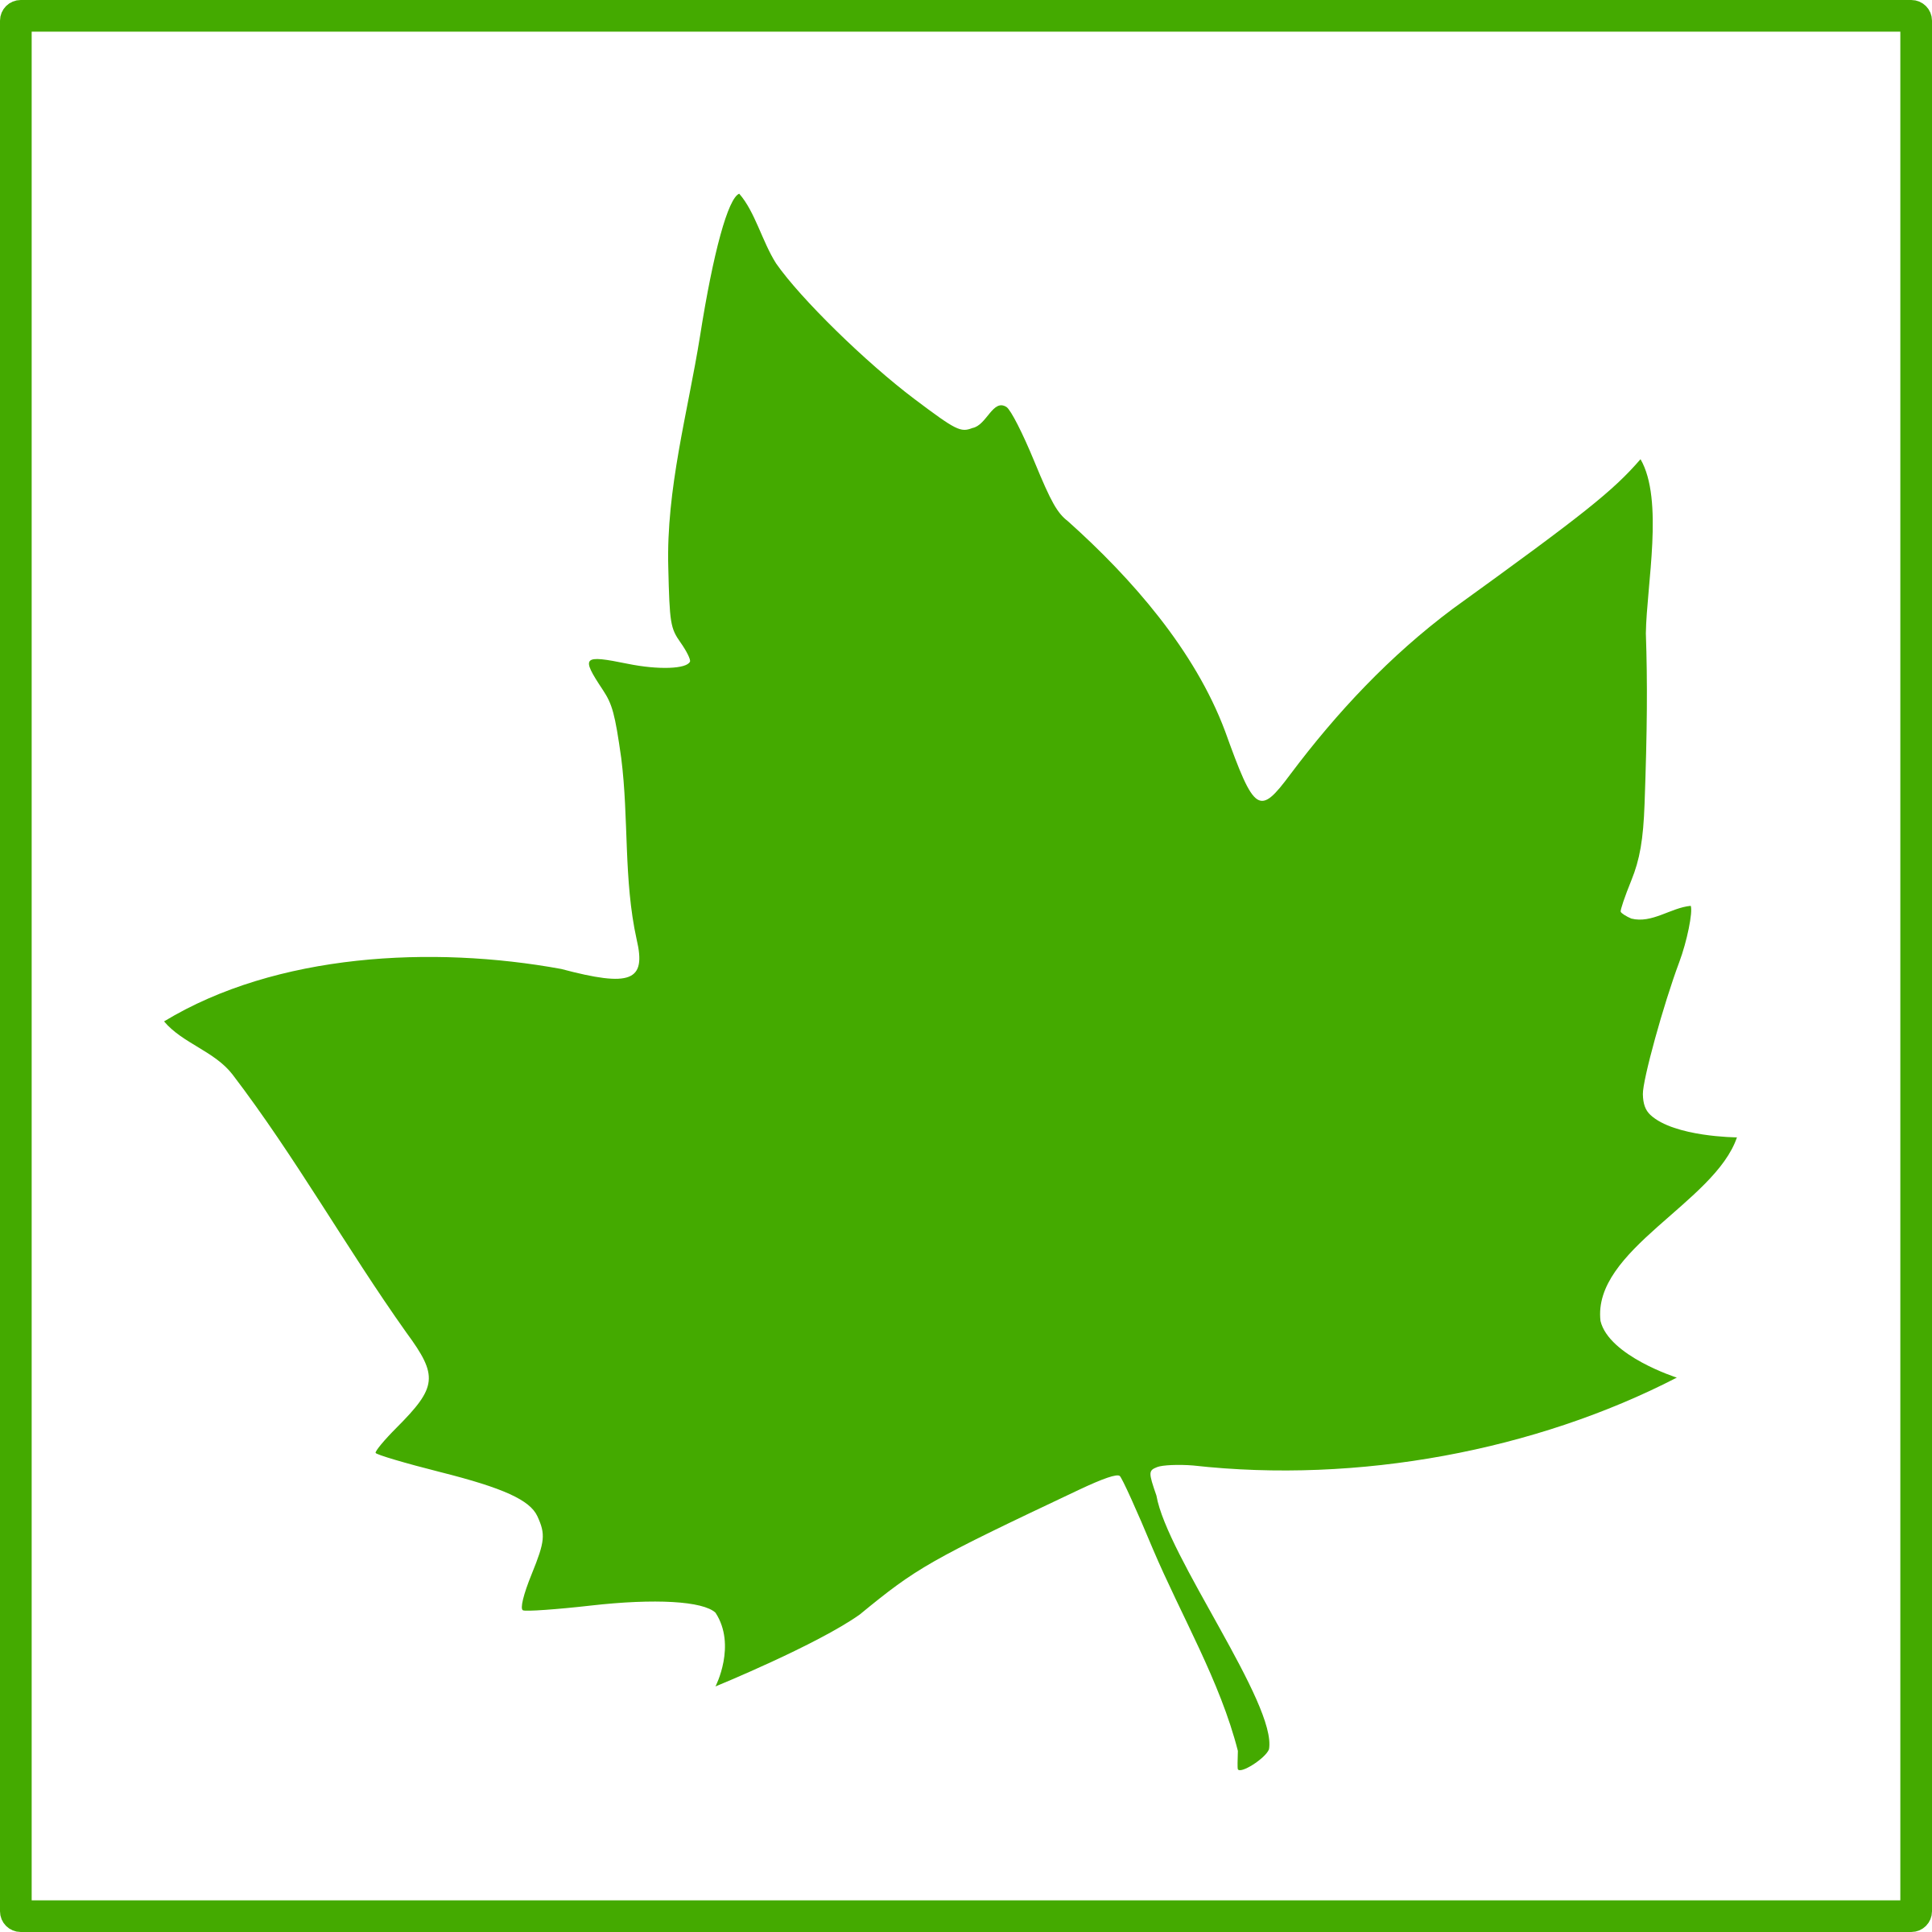 eco green leaf icon by dominiquechappard